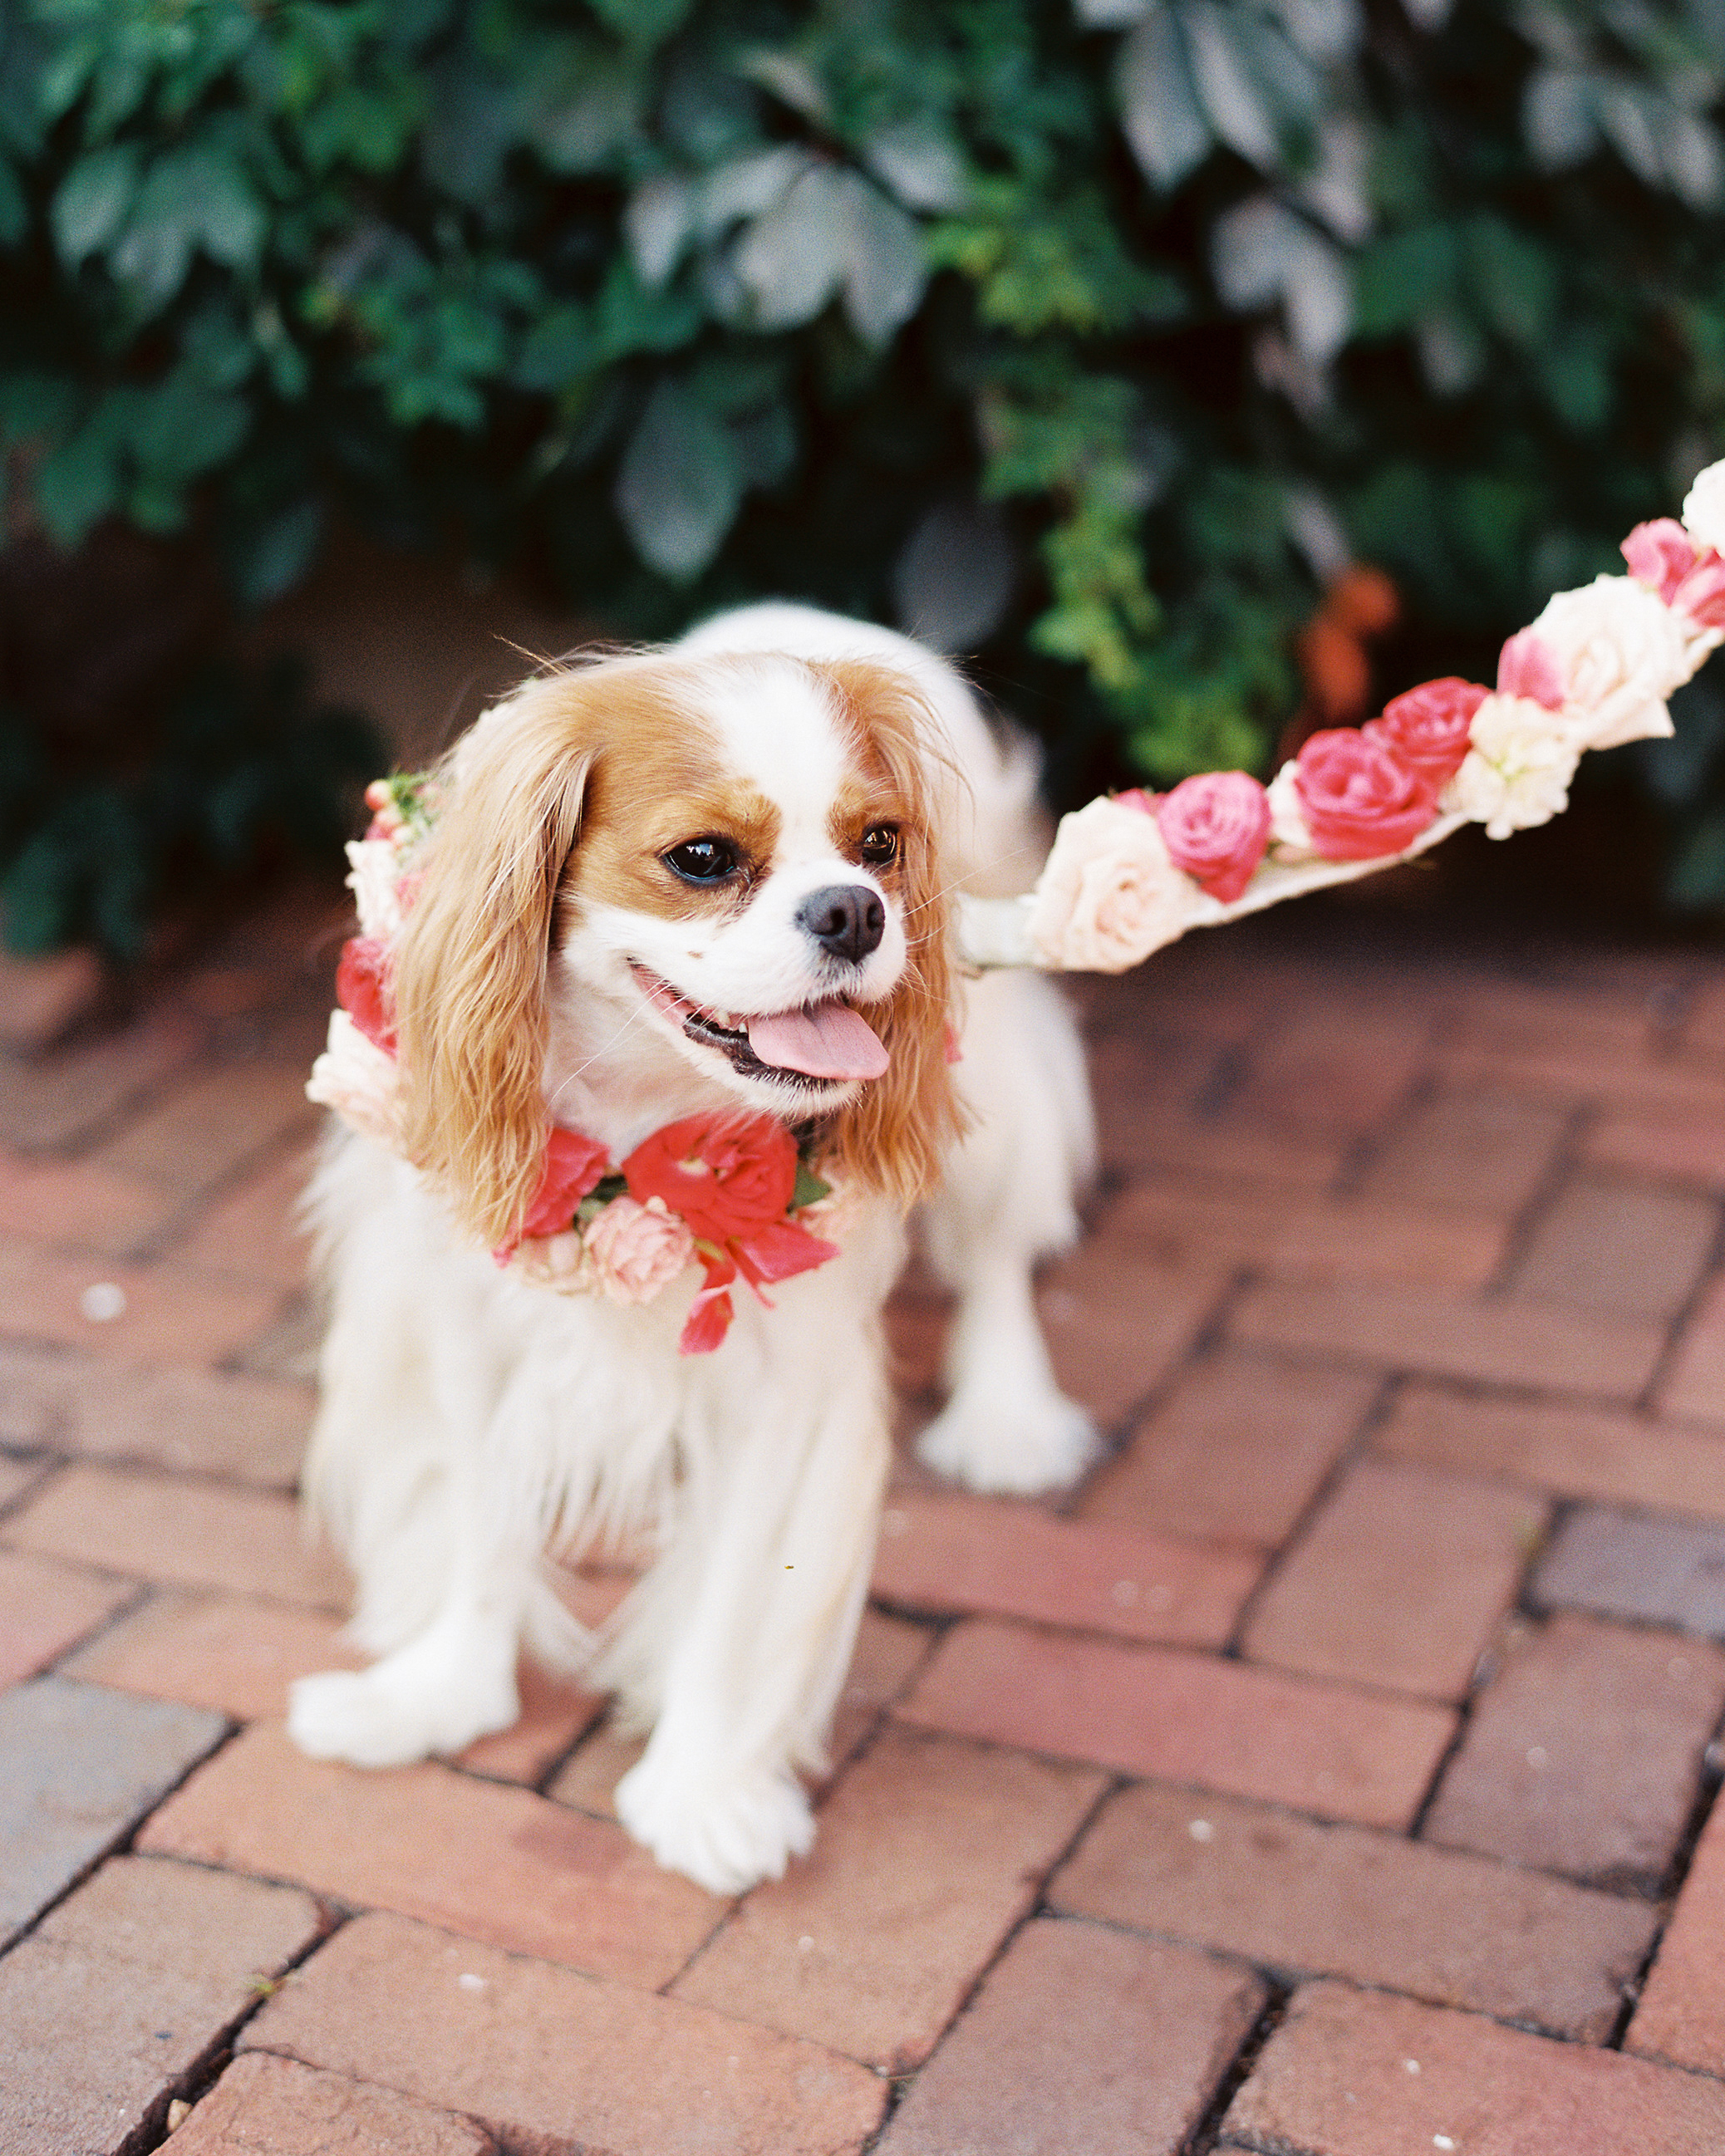 molly-patrick-wedding-dog-3271-s111760-0115.jpg